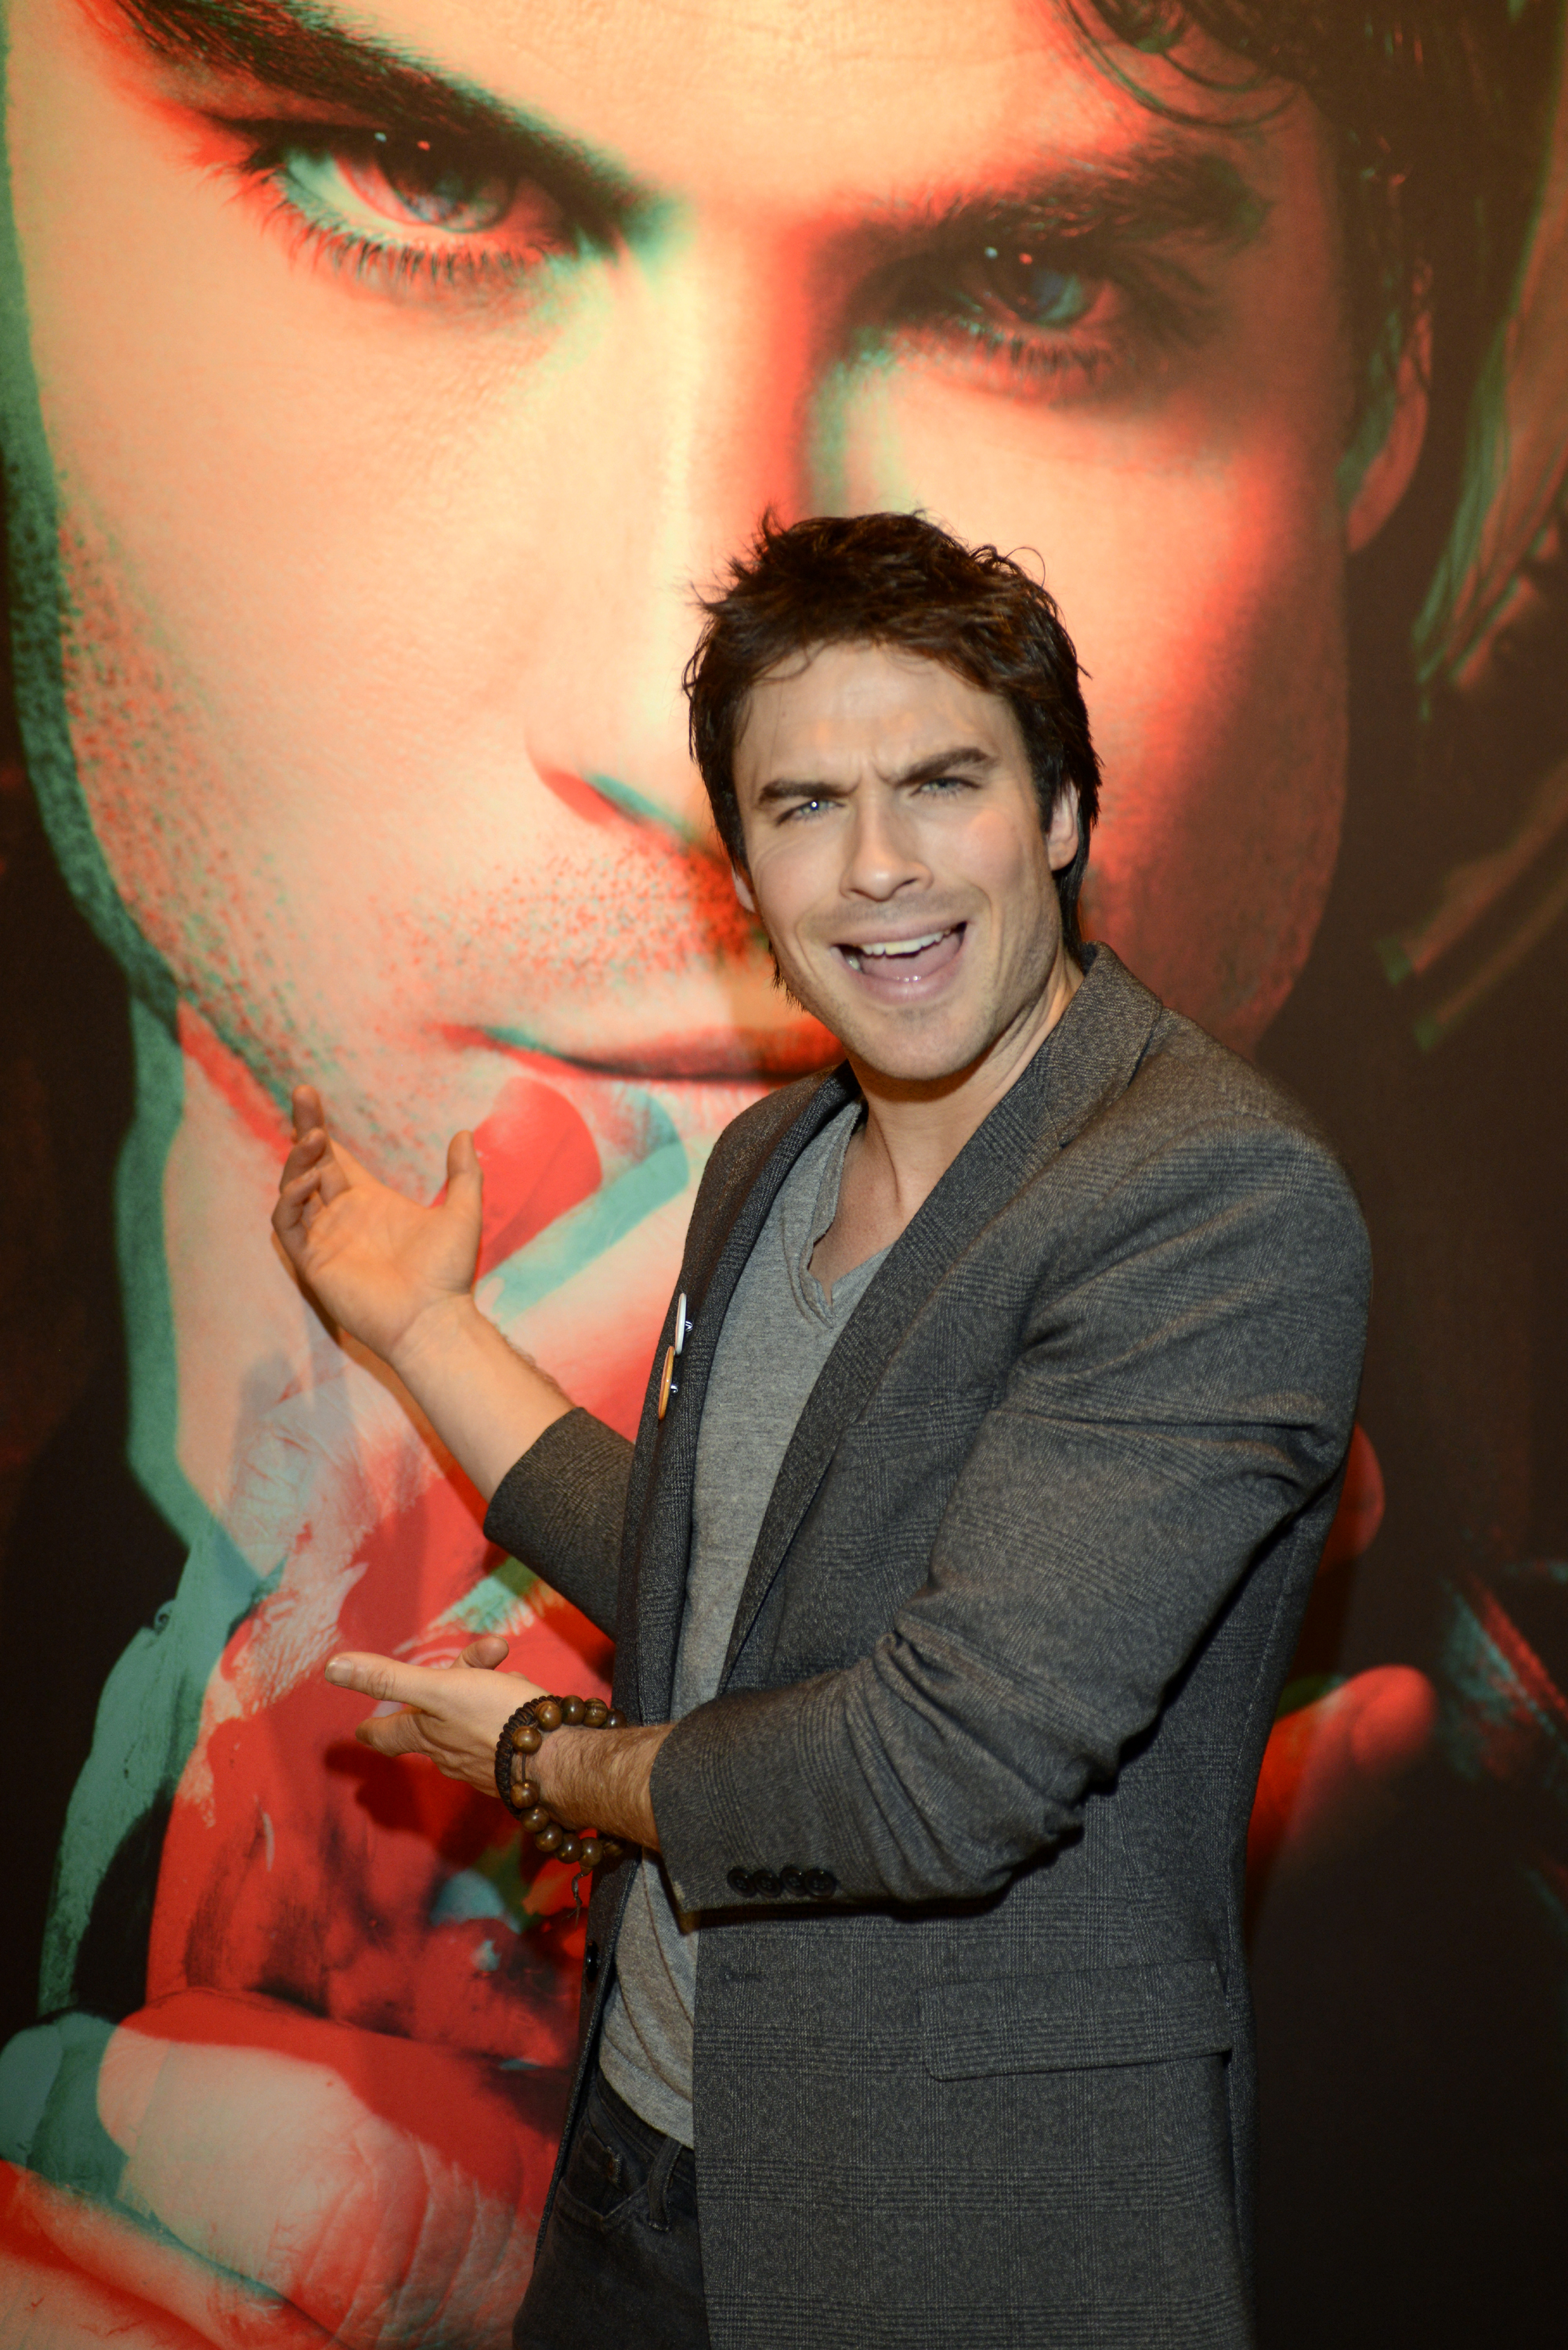 Ian Somerhalder attended the Warner Brothers party at SXSW.